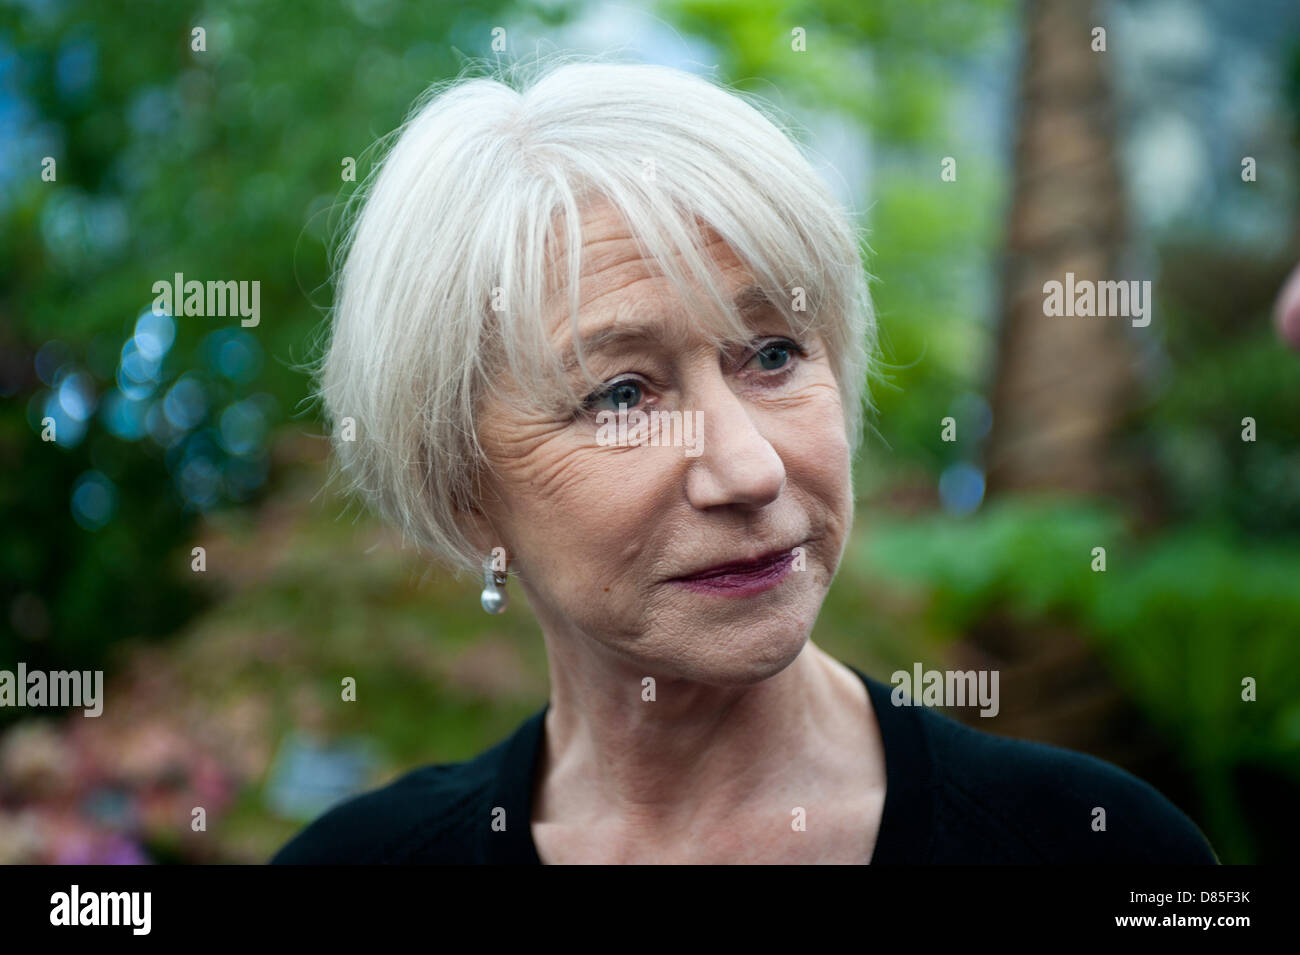 London, UK - 20 May 2013: Dame Helen Mirren visits the Burncoose stand which is designed to illustrate how a garden Stock Photo